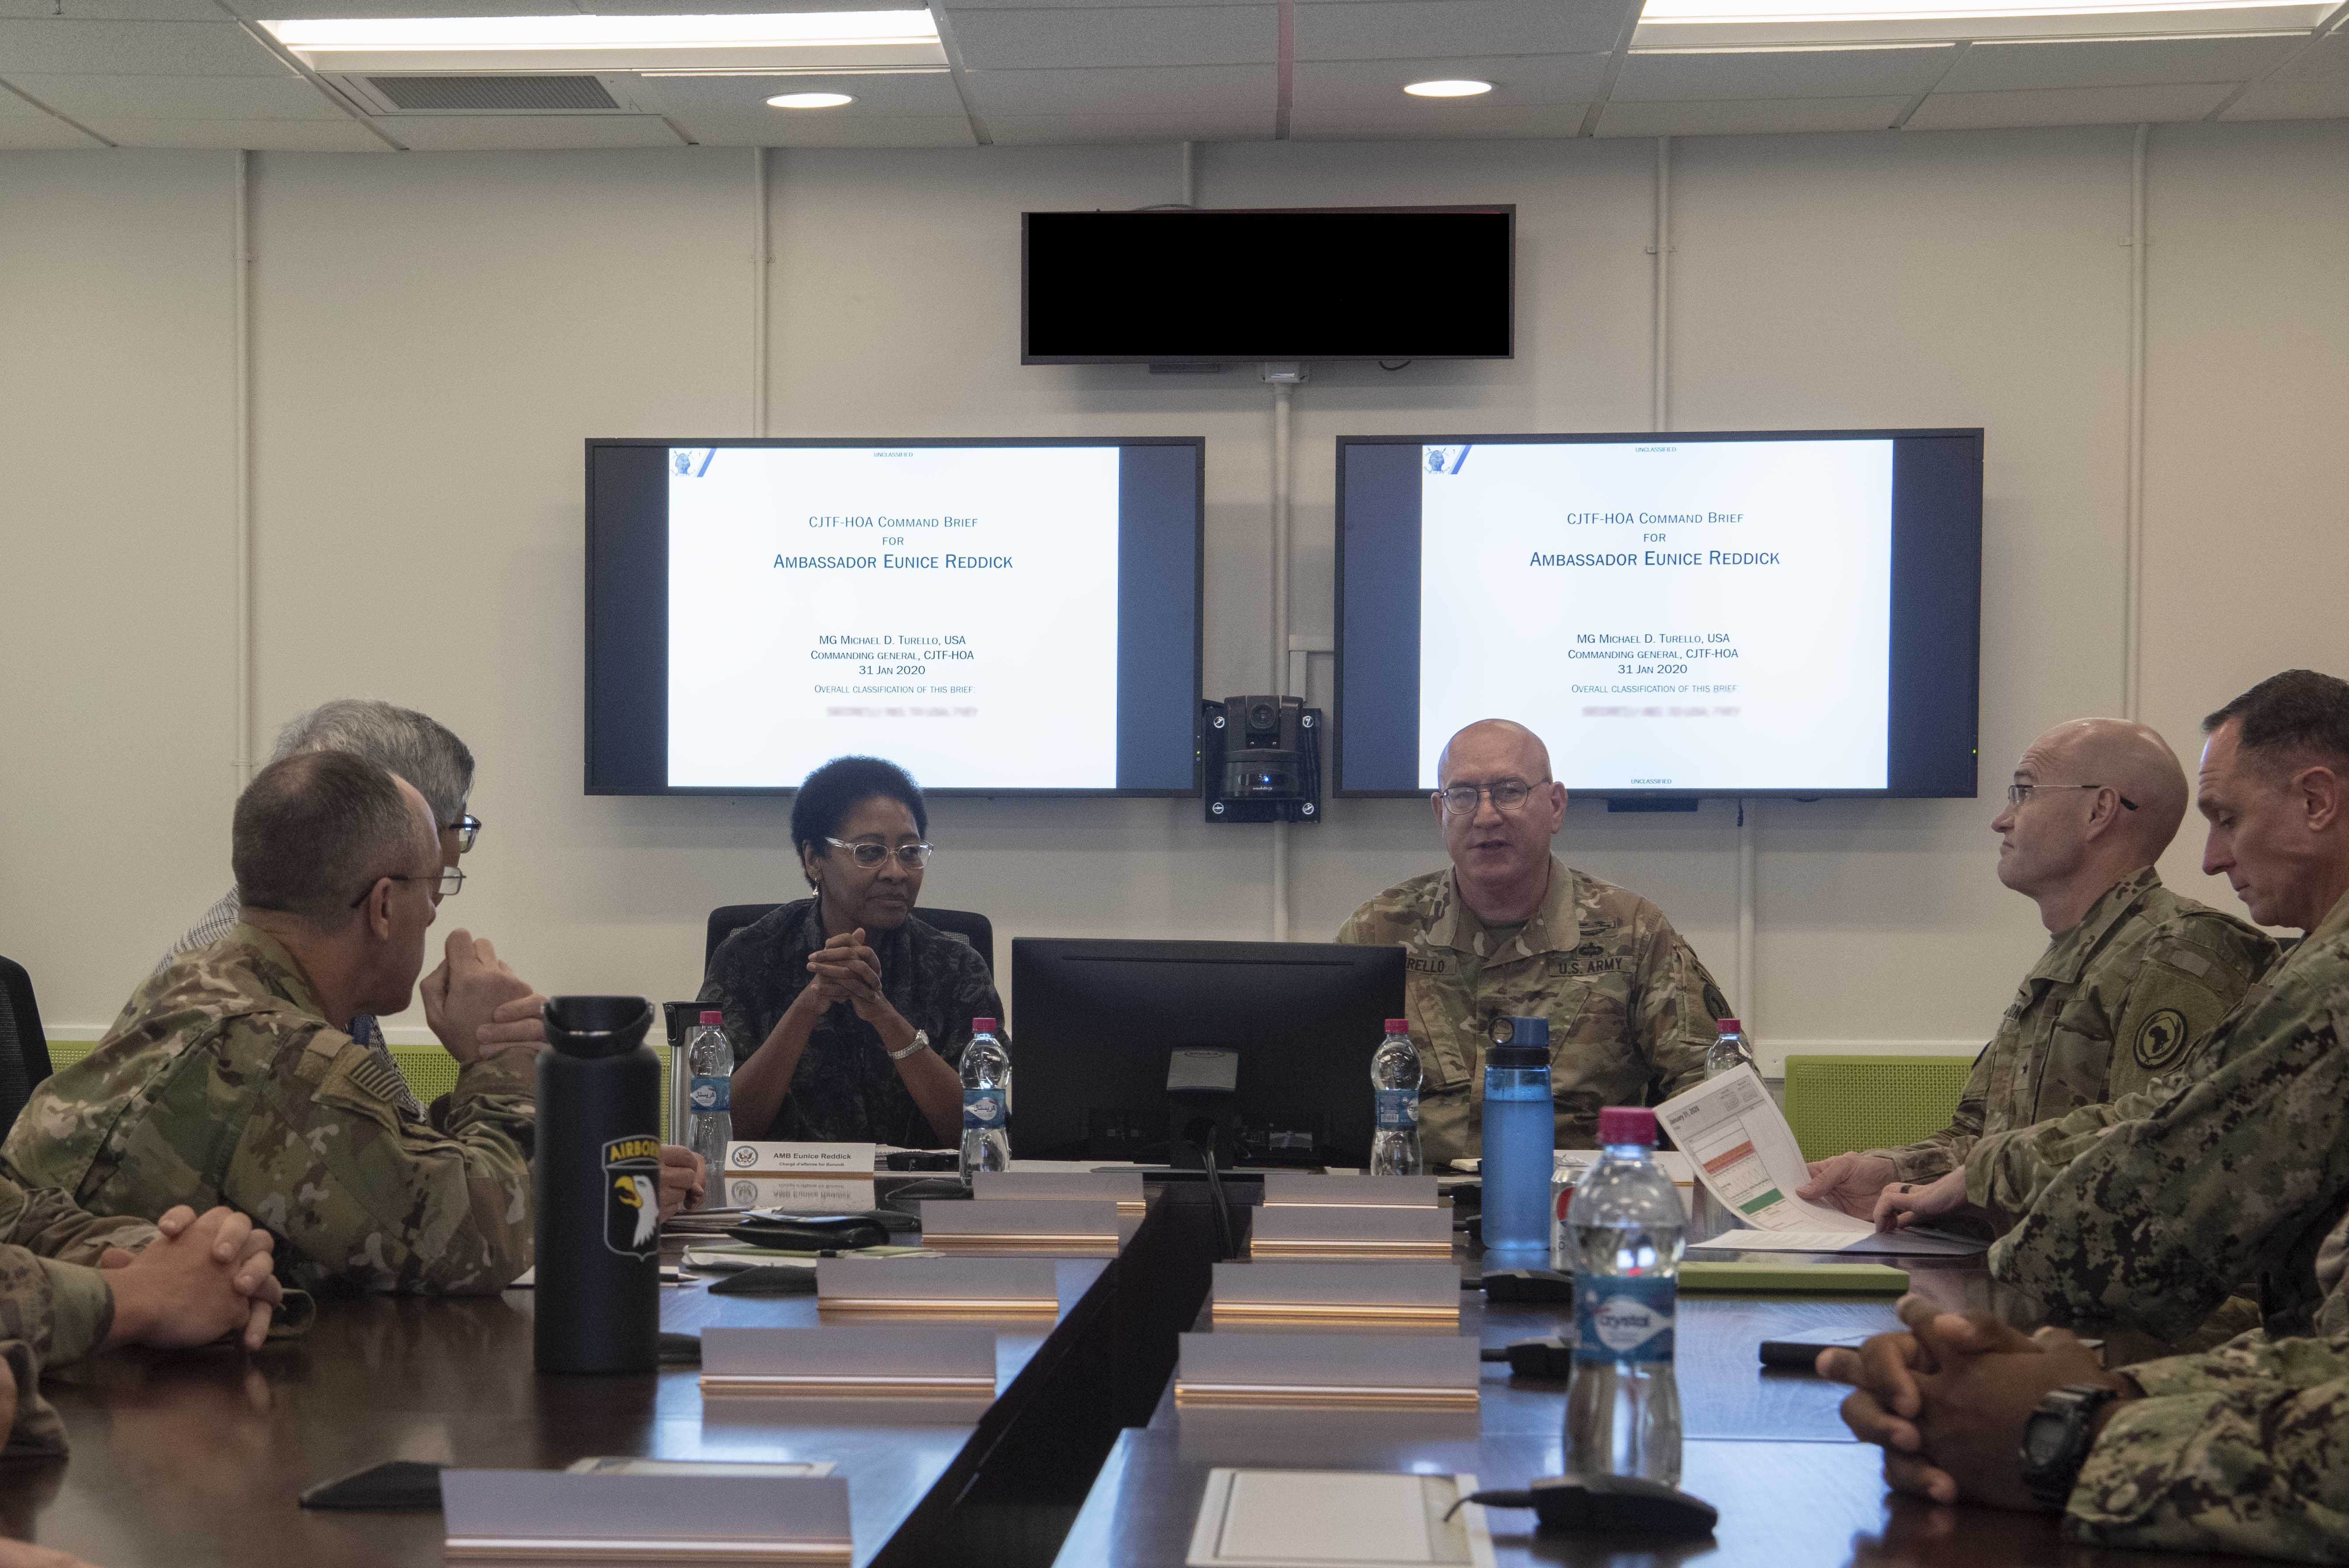 Key leaders from Combined Joint Task Force- Horn of Africa (CJTF-HOA), brief Ambassador Eunice S. Reddick, Chargé d'affaires of the U.S. Embassy to Burundi, at Camp Lemonnier, Djibouti, Jan. 31, 2020. Reddick visited to learn more about the CJTF-HOA mission. (U.S. Air Force photo illustration by Tech. Sgt. Ashley Nicole Taylor)